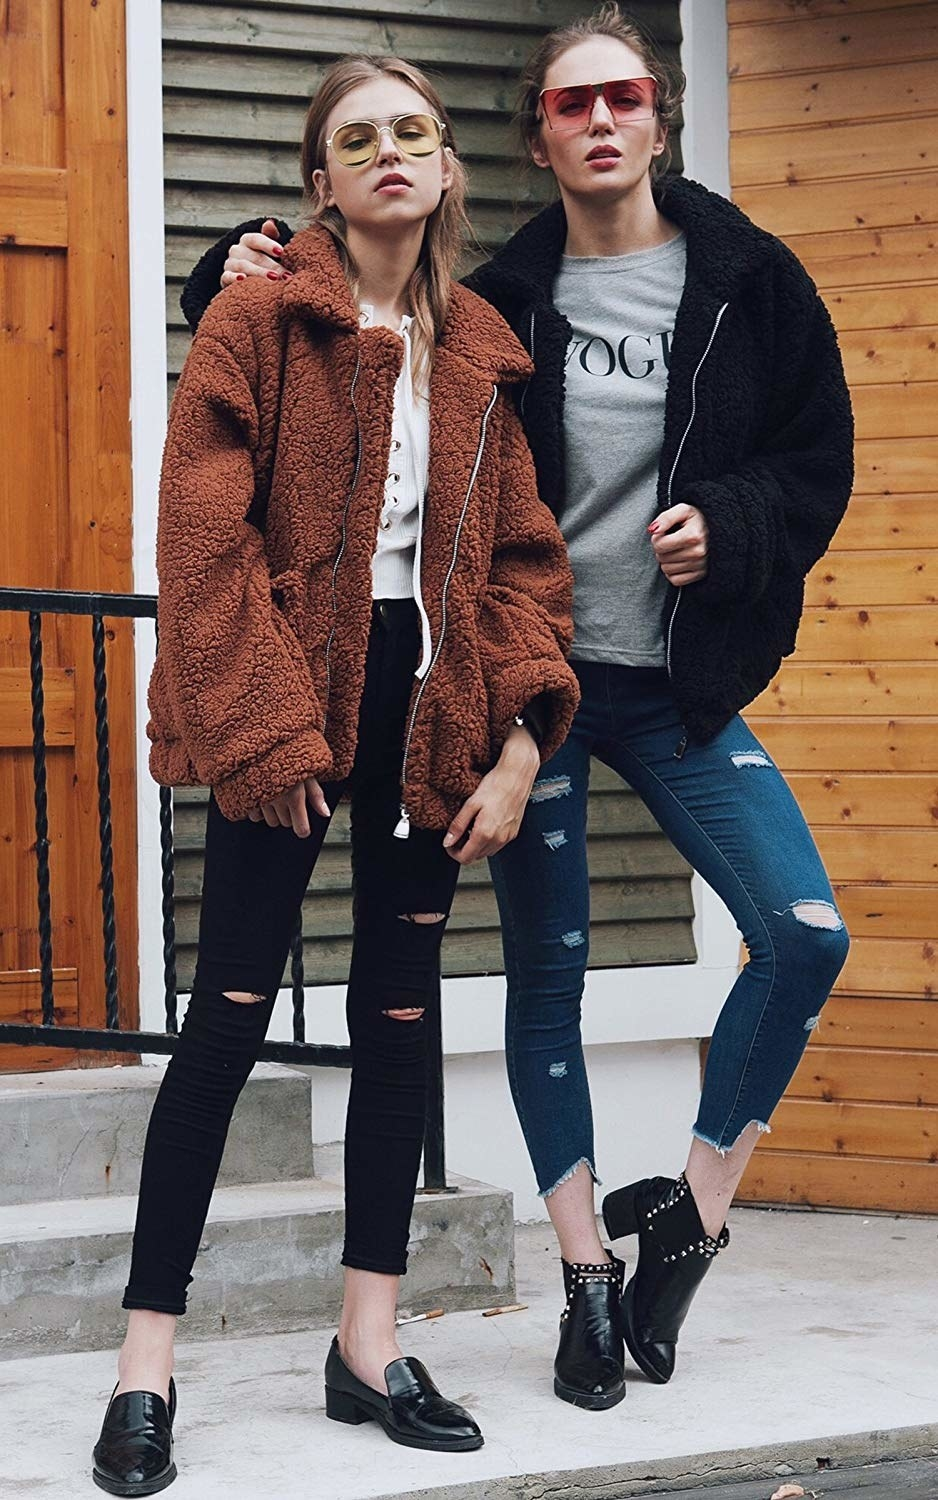 Two models in the black and brown zip-front jackets